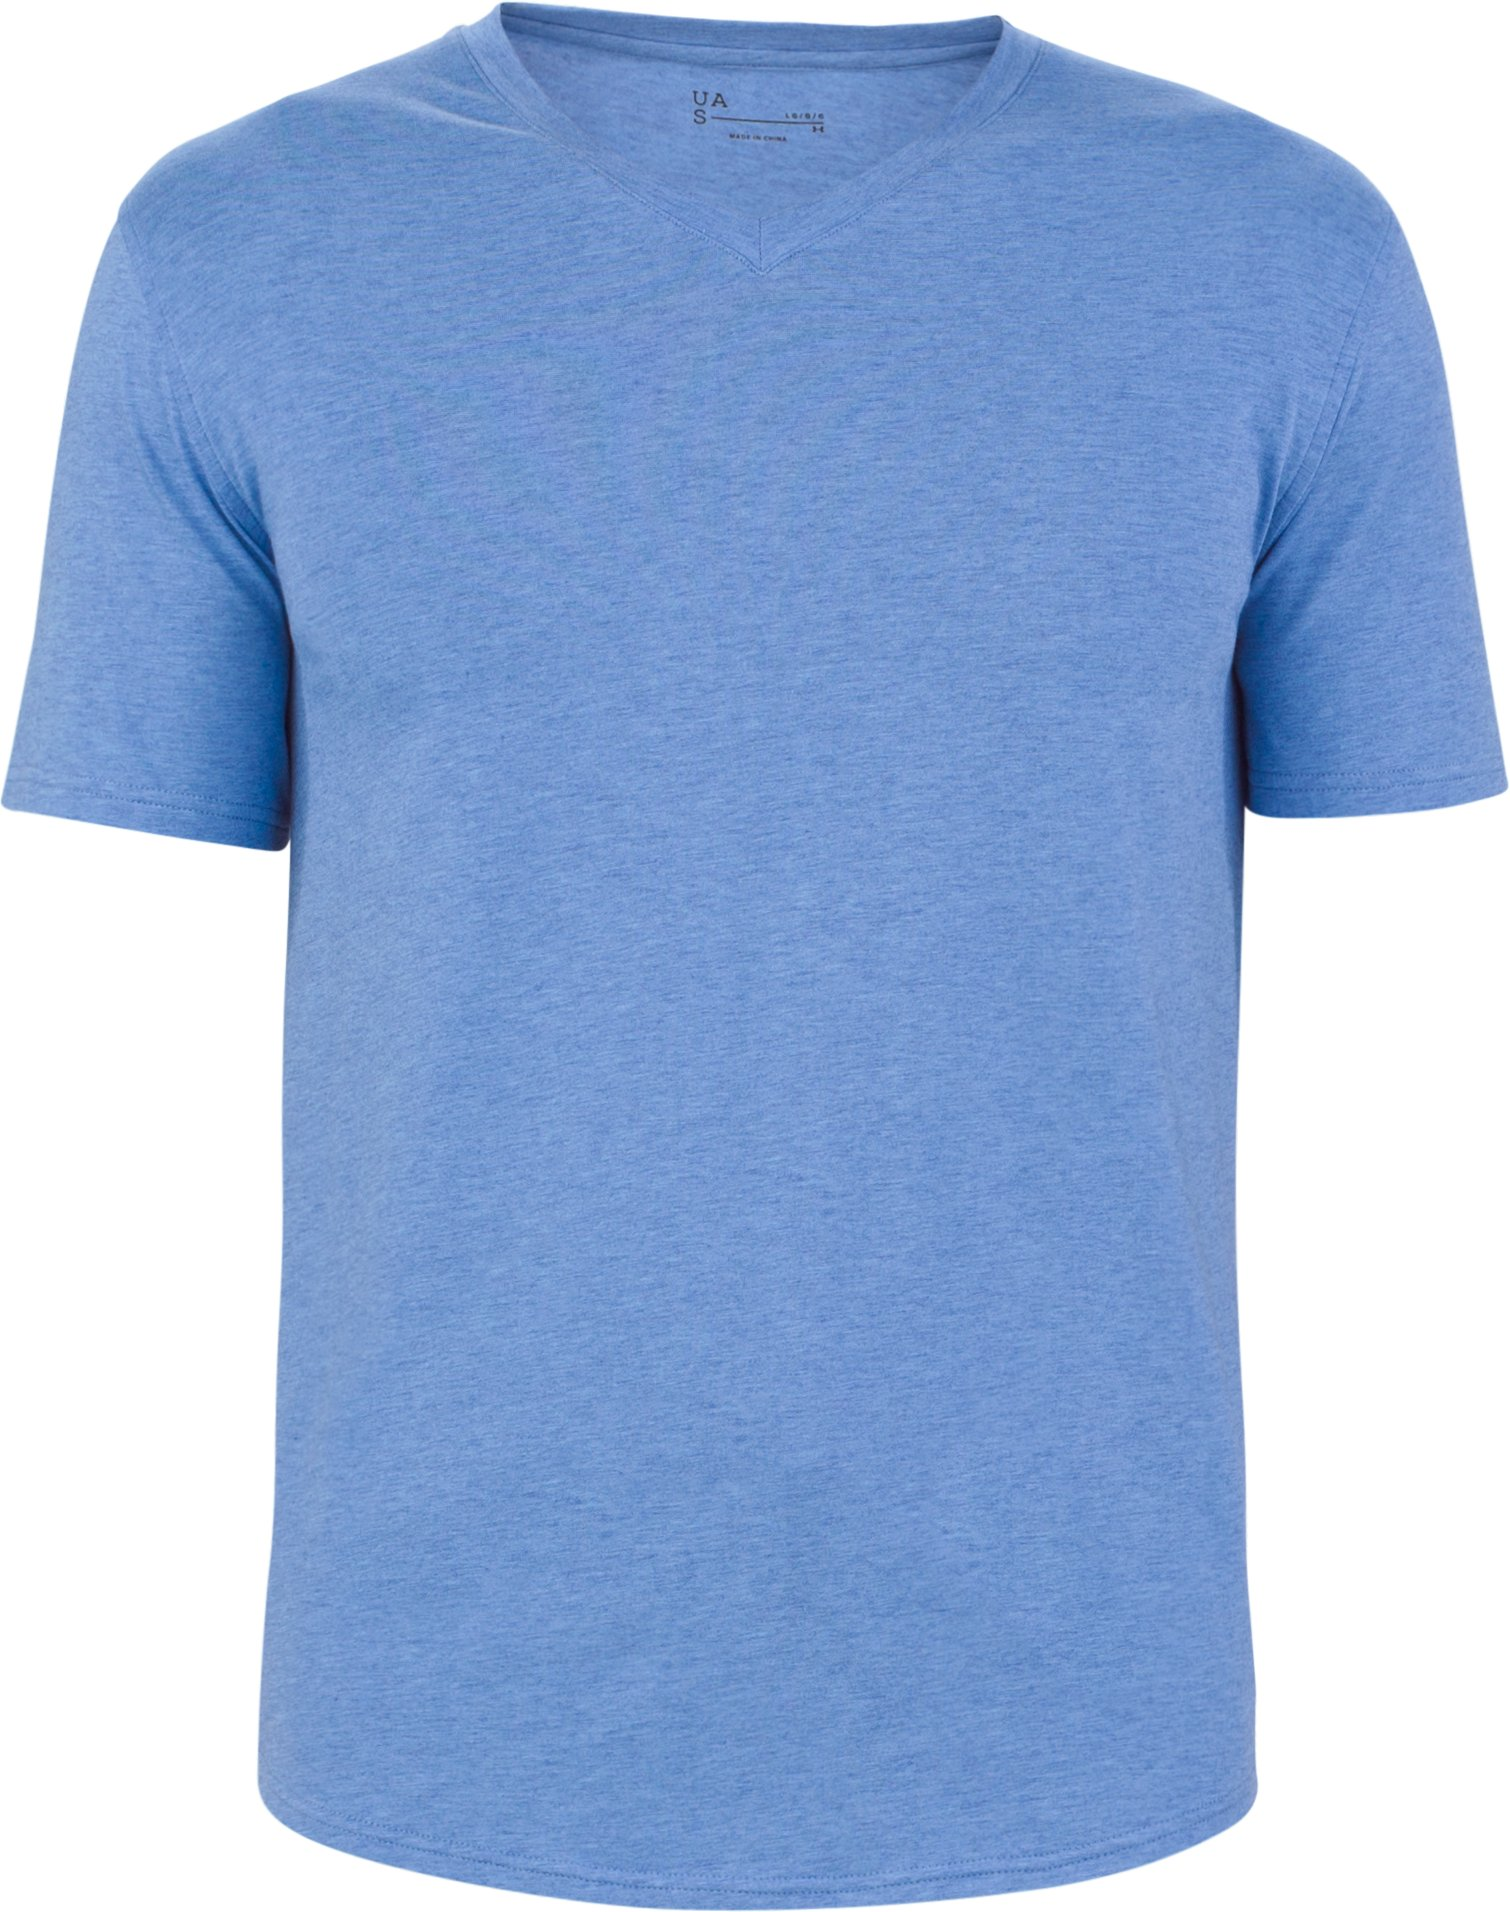 UAS Highline Cashmere-Cotton V-Neck, ROYAL LIGHT BLUE, undefined